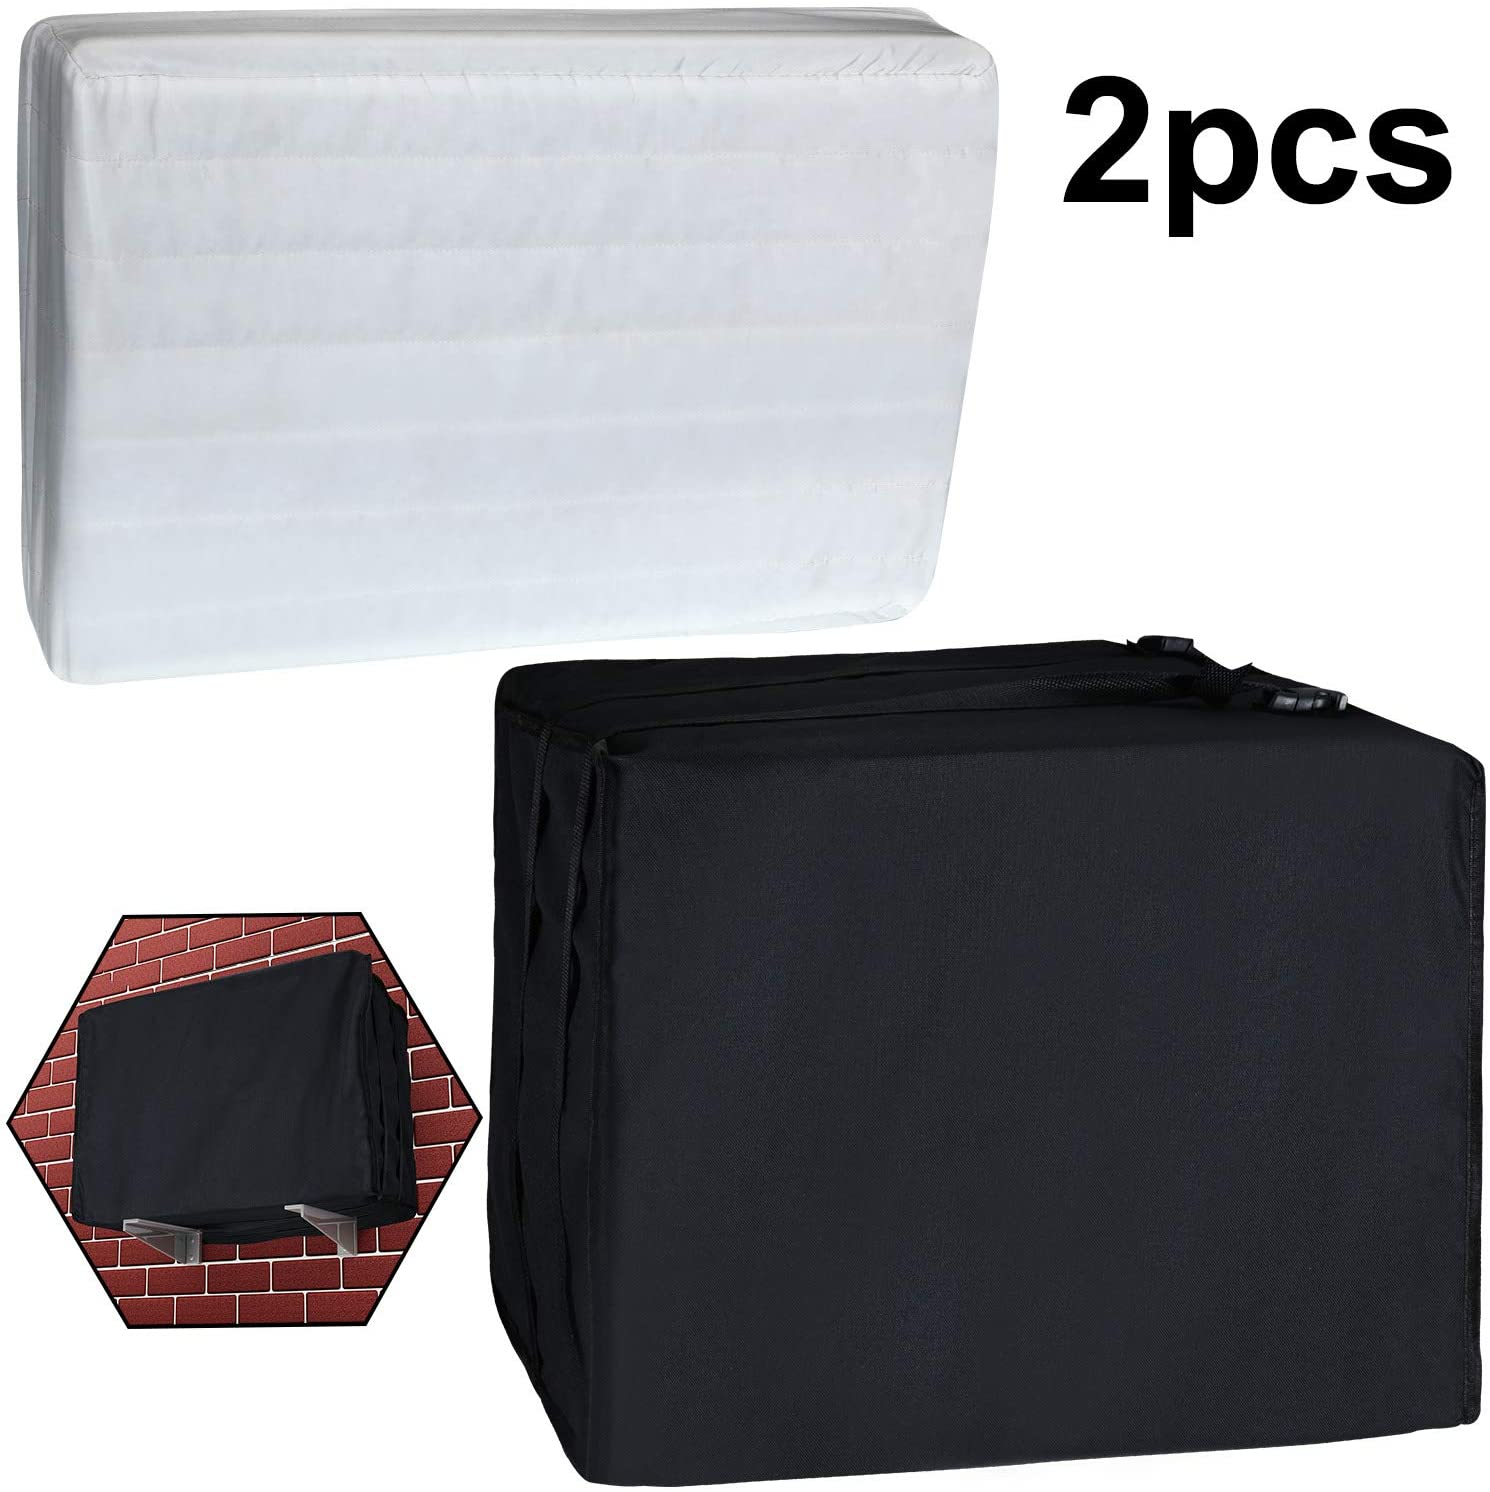 2 Pieces Outside and Indoor Window Air Conditioner Cover Water Resistant Adjustable AC Cover with Elastic Straps for Bottom Covered Outside Units, White and Black (70 x 56 x 46 cm, 70 x 50 x 7 cm)